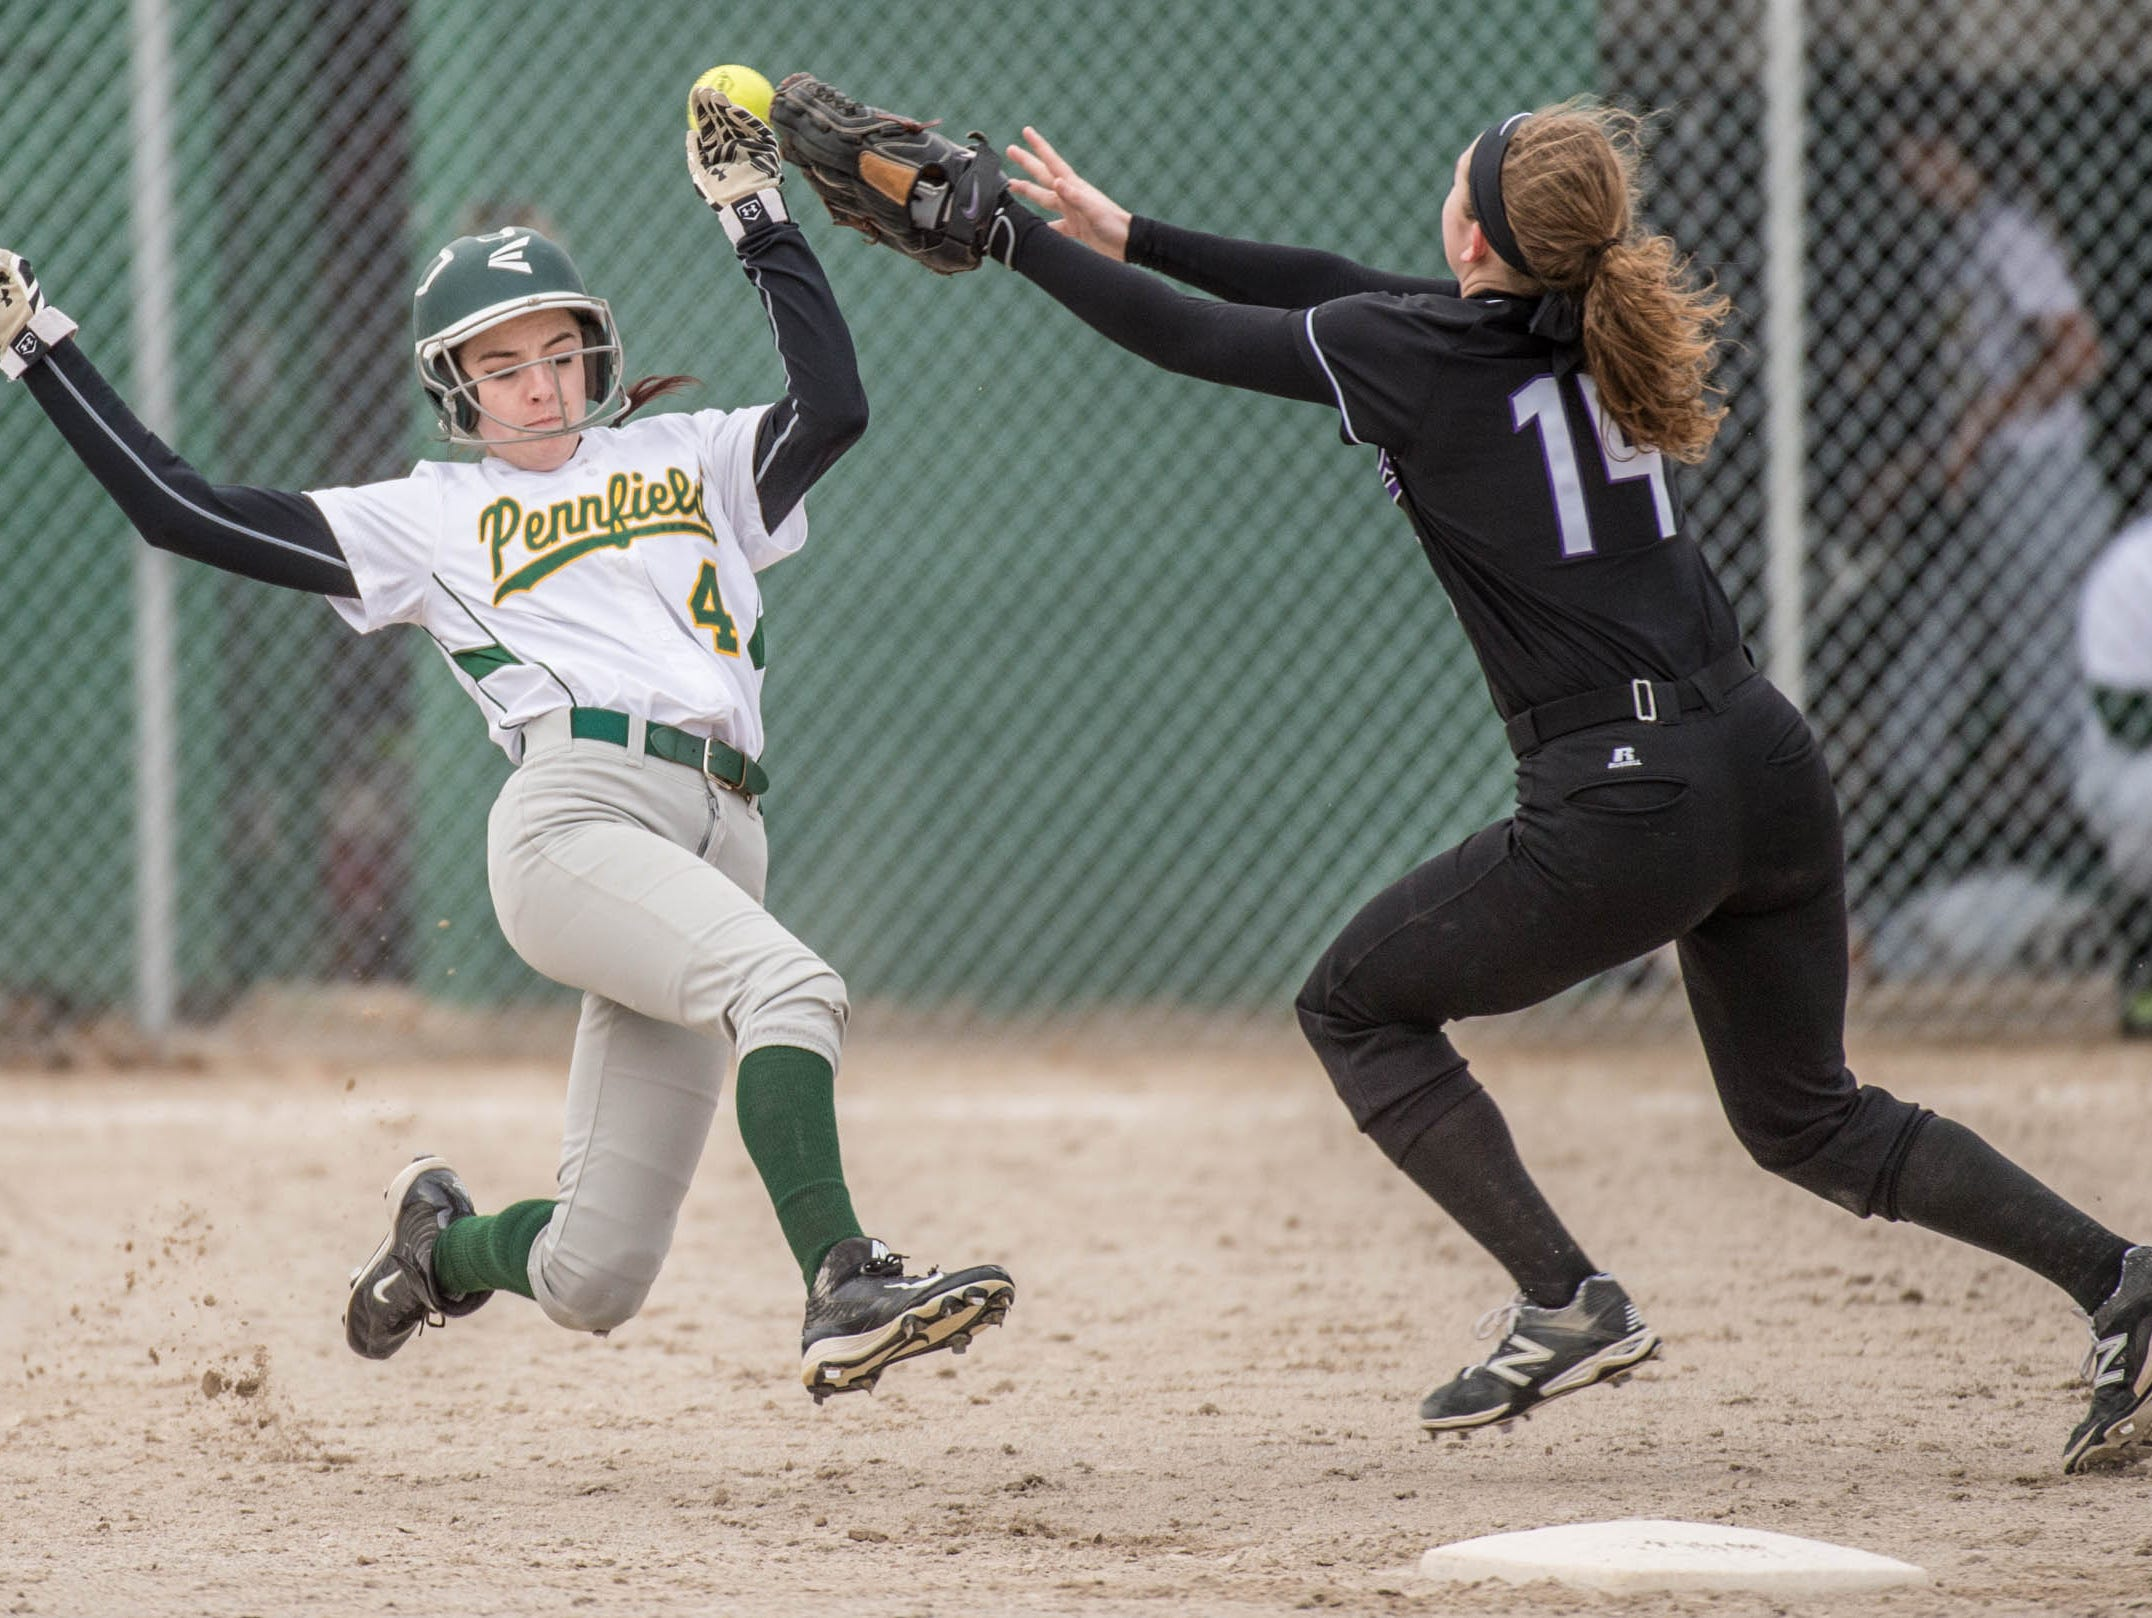 Lakeview's Kim Kucharczyk (14) goes for the ball as Pennfield's Lexi Purvis (4) slides into second.